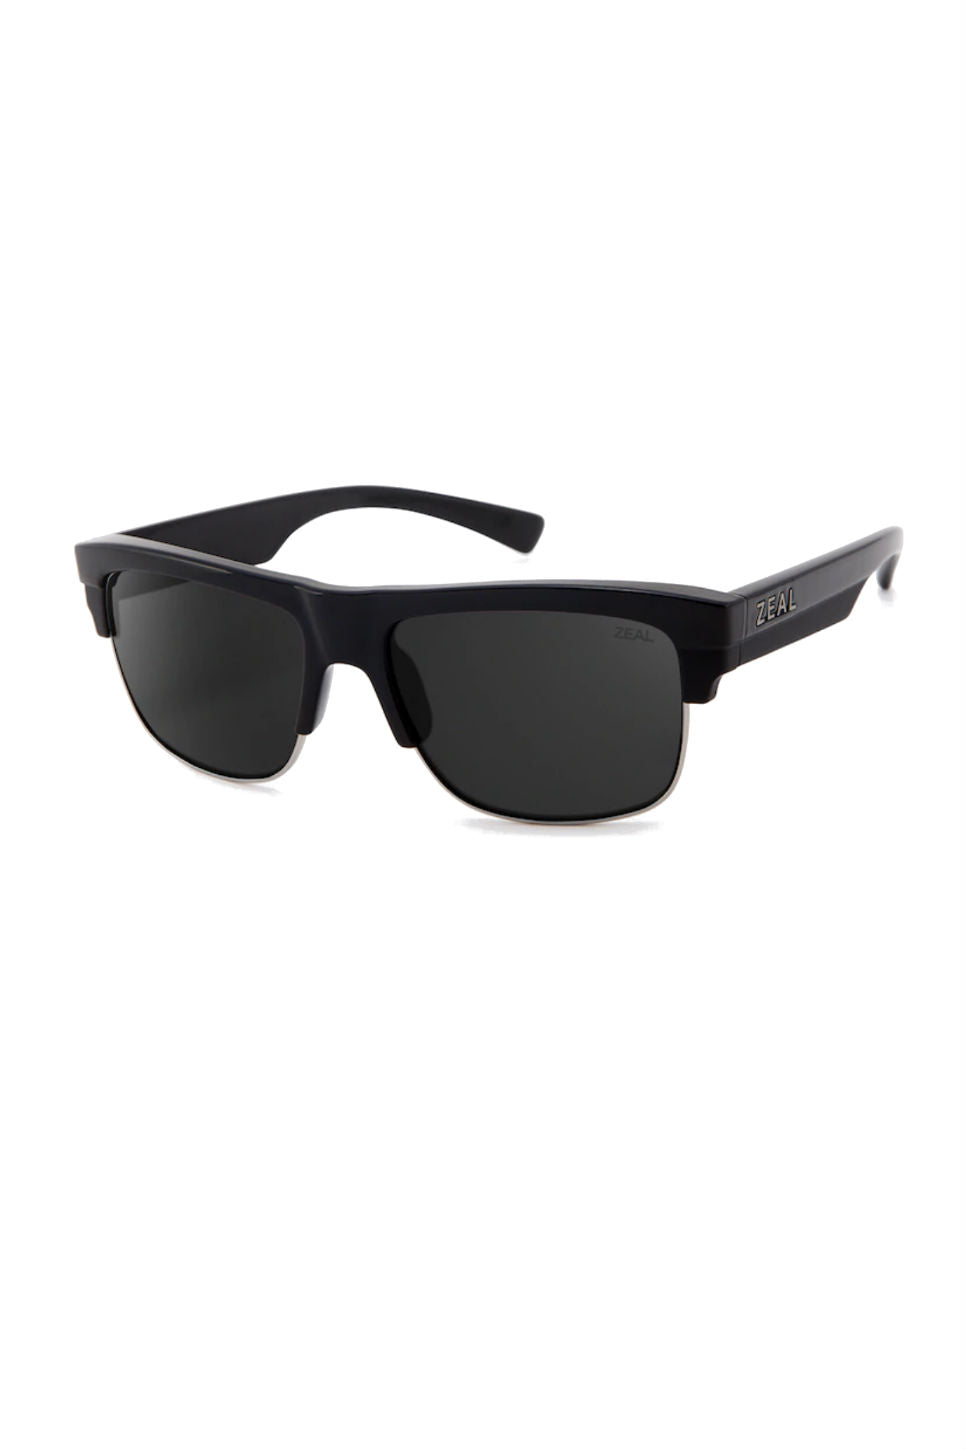 Zeal Optics - Emerson - Black Gloss/Dk Grey - Profile